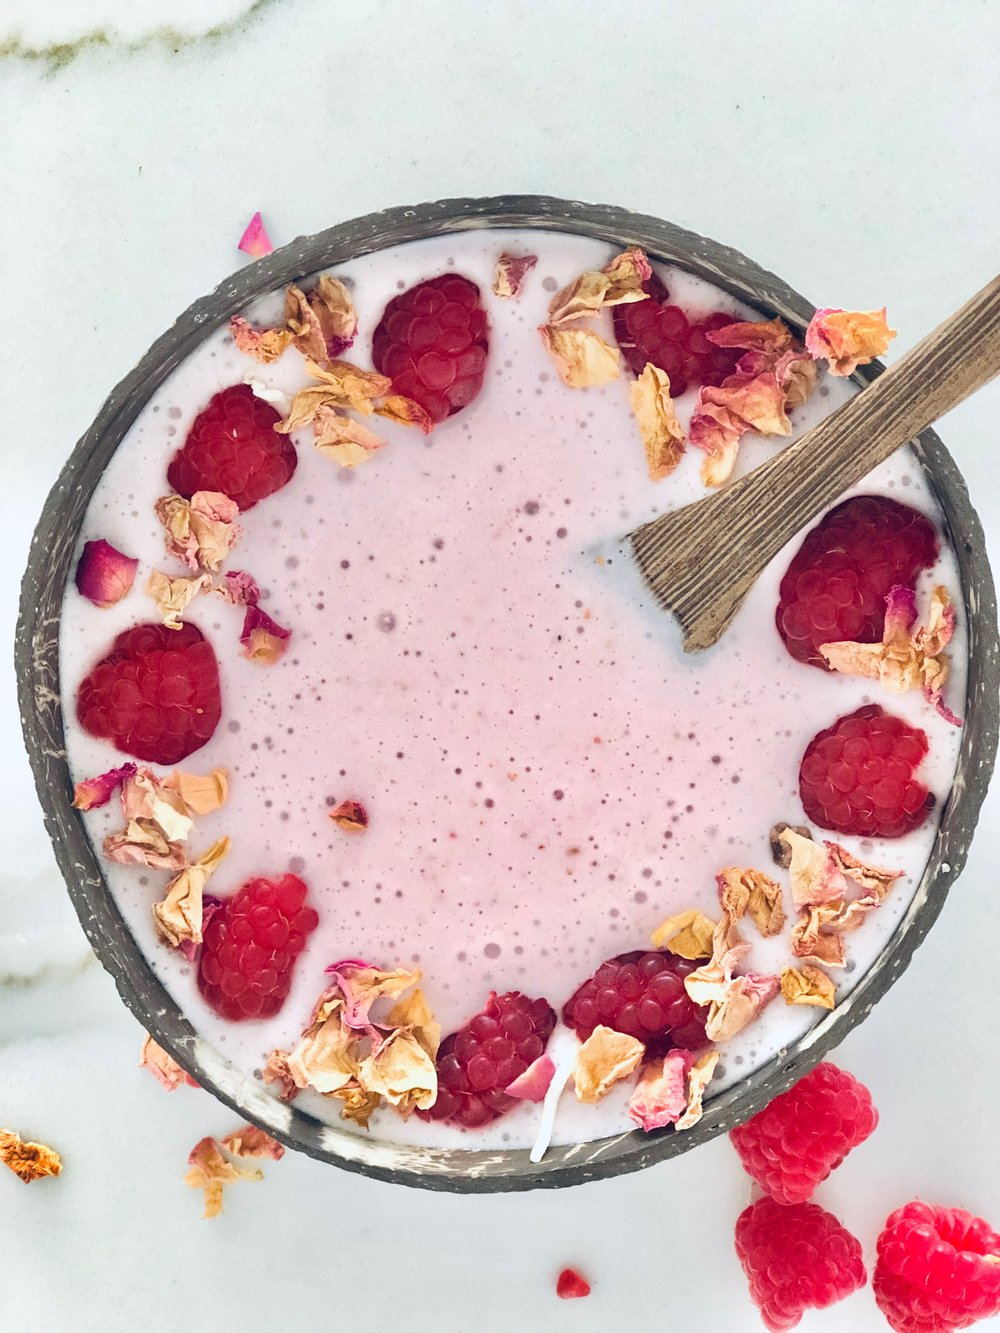 - Ingredients½ cup Ice½ cup of Fresh Raspberries 1 serving of Vanilla Protein 1 serve Collagen½ cup Frozen Coconut Chunks2 tbsp of Coconut Yogurt Dash of almond milkMethod Blend, top with fave toppings like these edible flowers & enjoy.